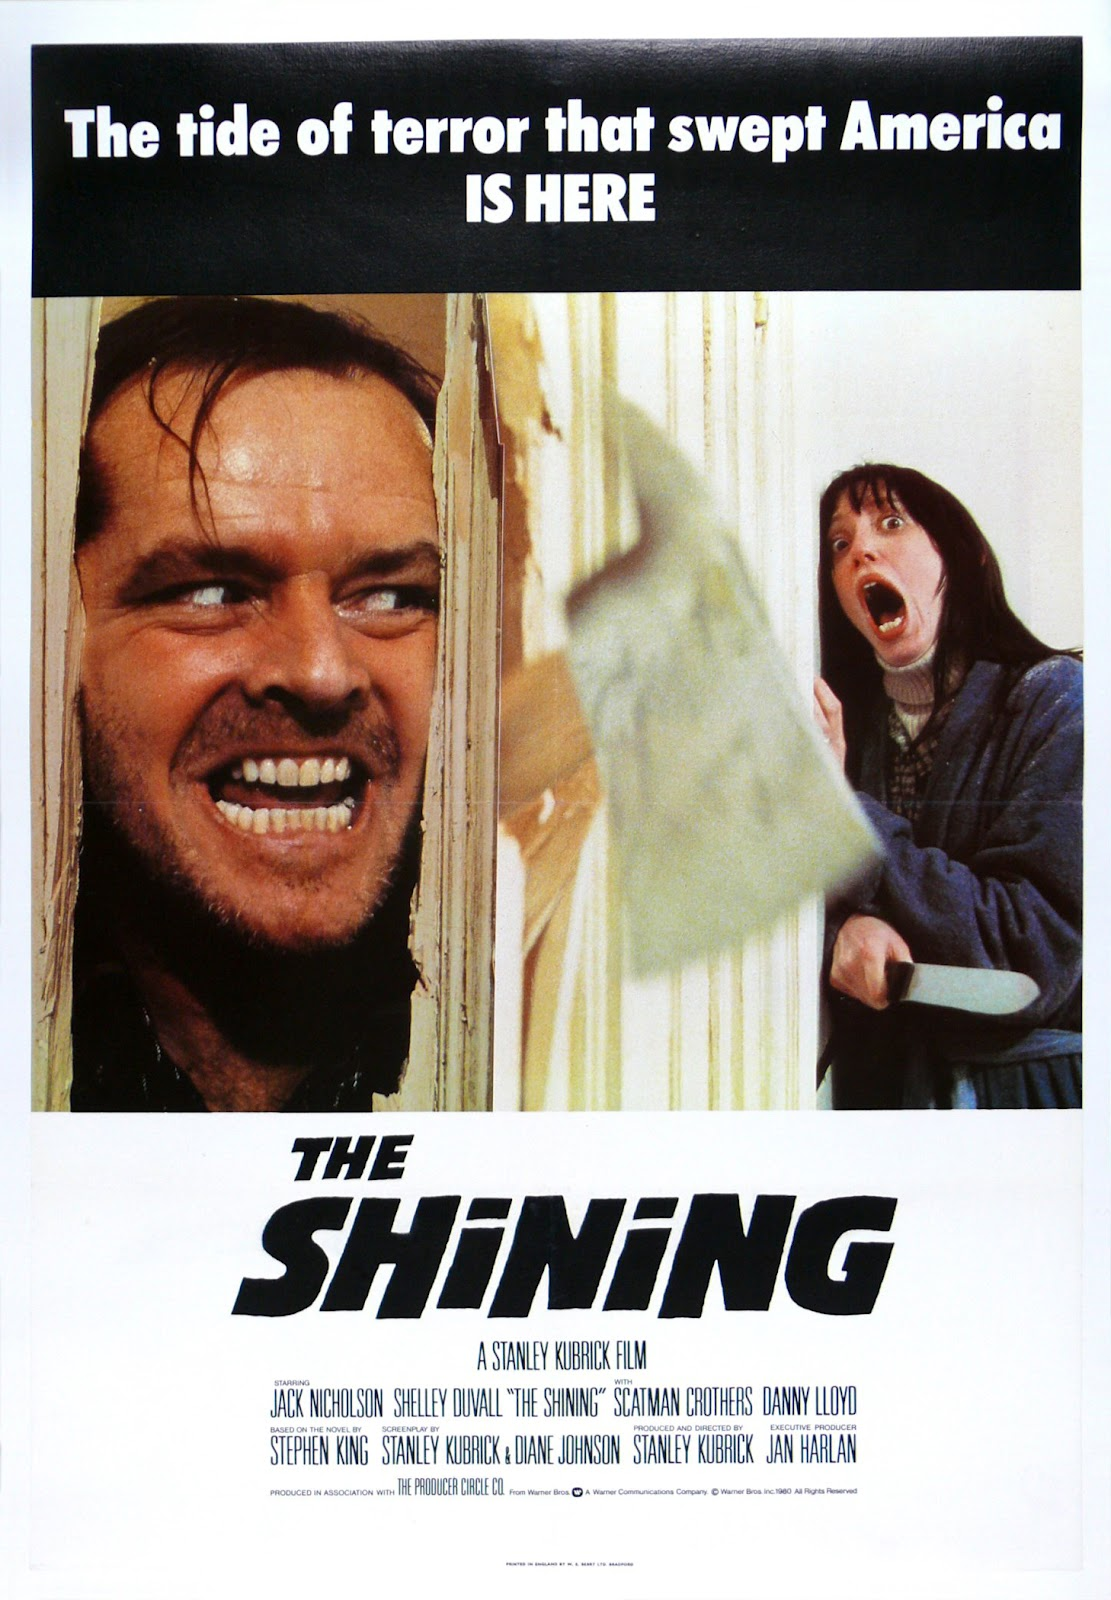 The Geeky Nerfherder: Movie Poster Art: The Shining (1980)